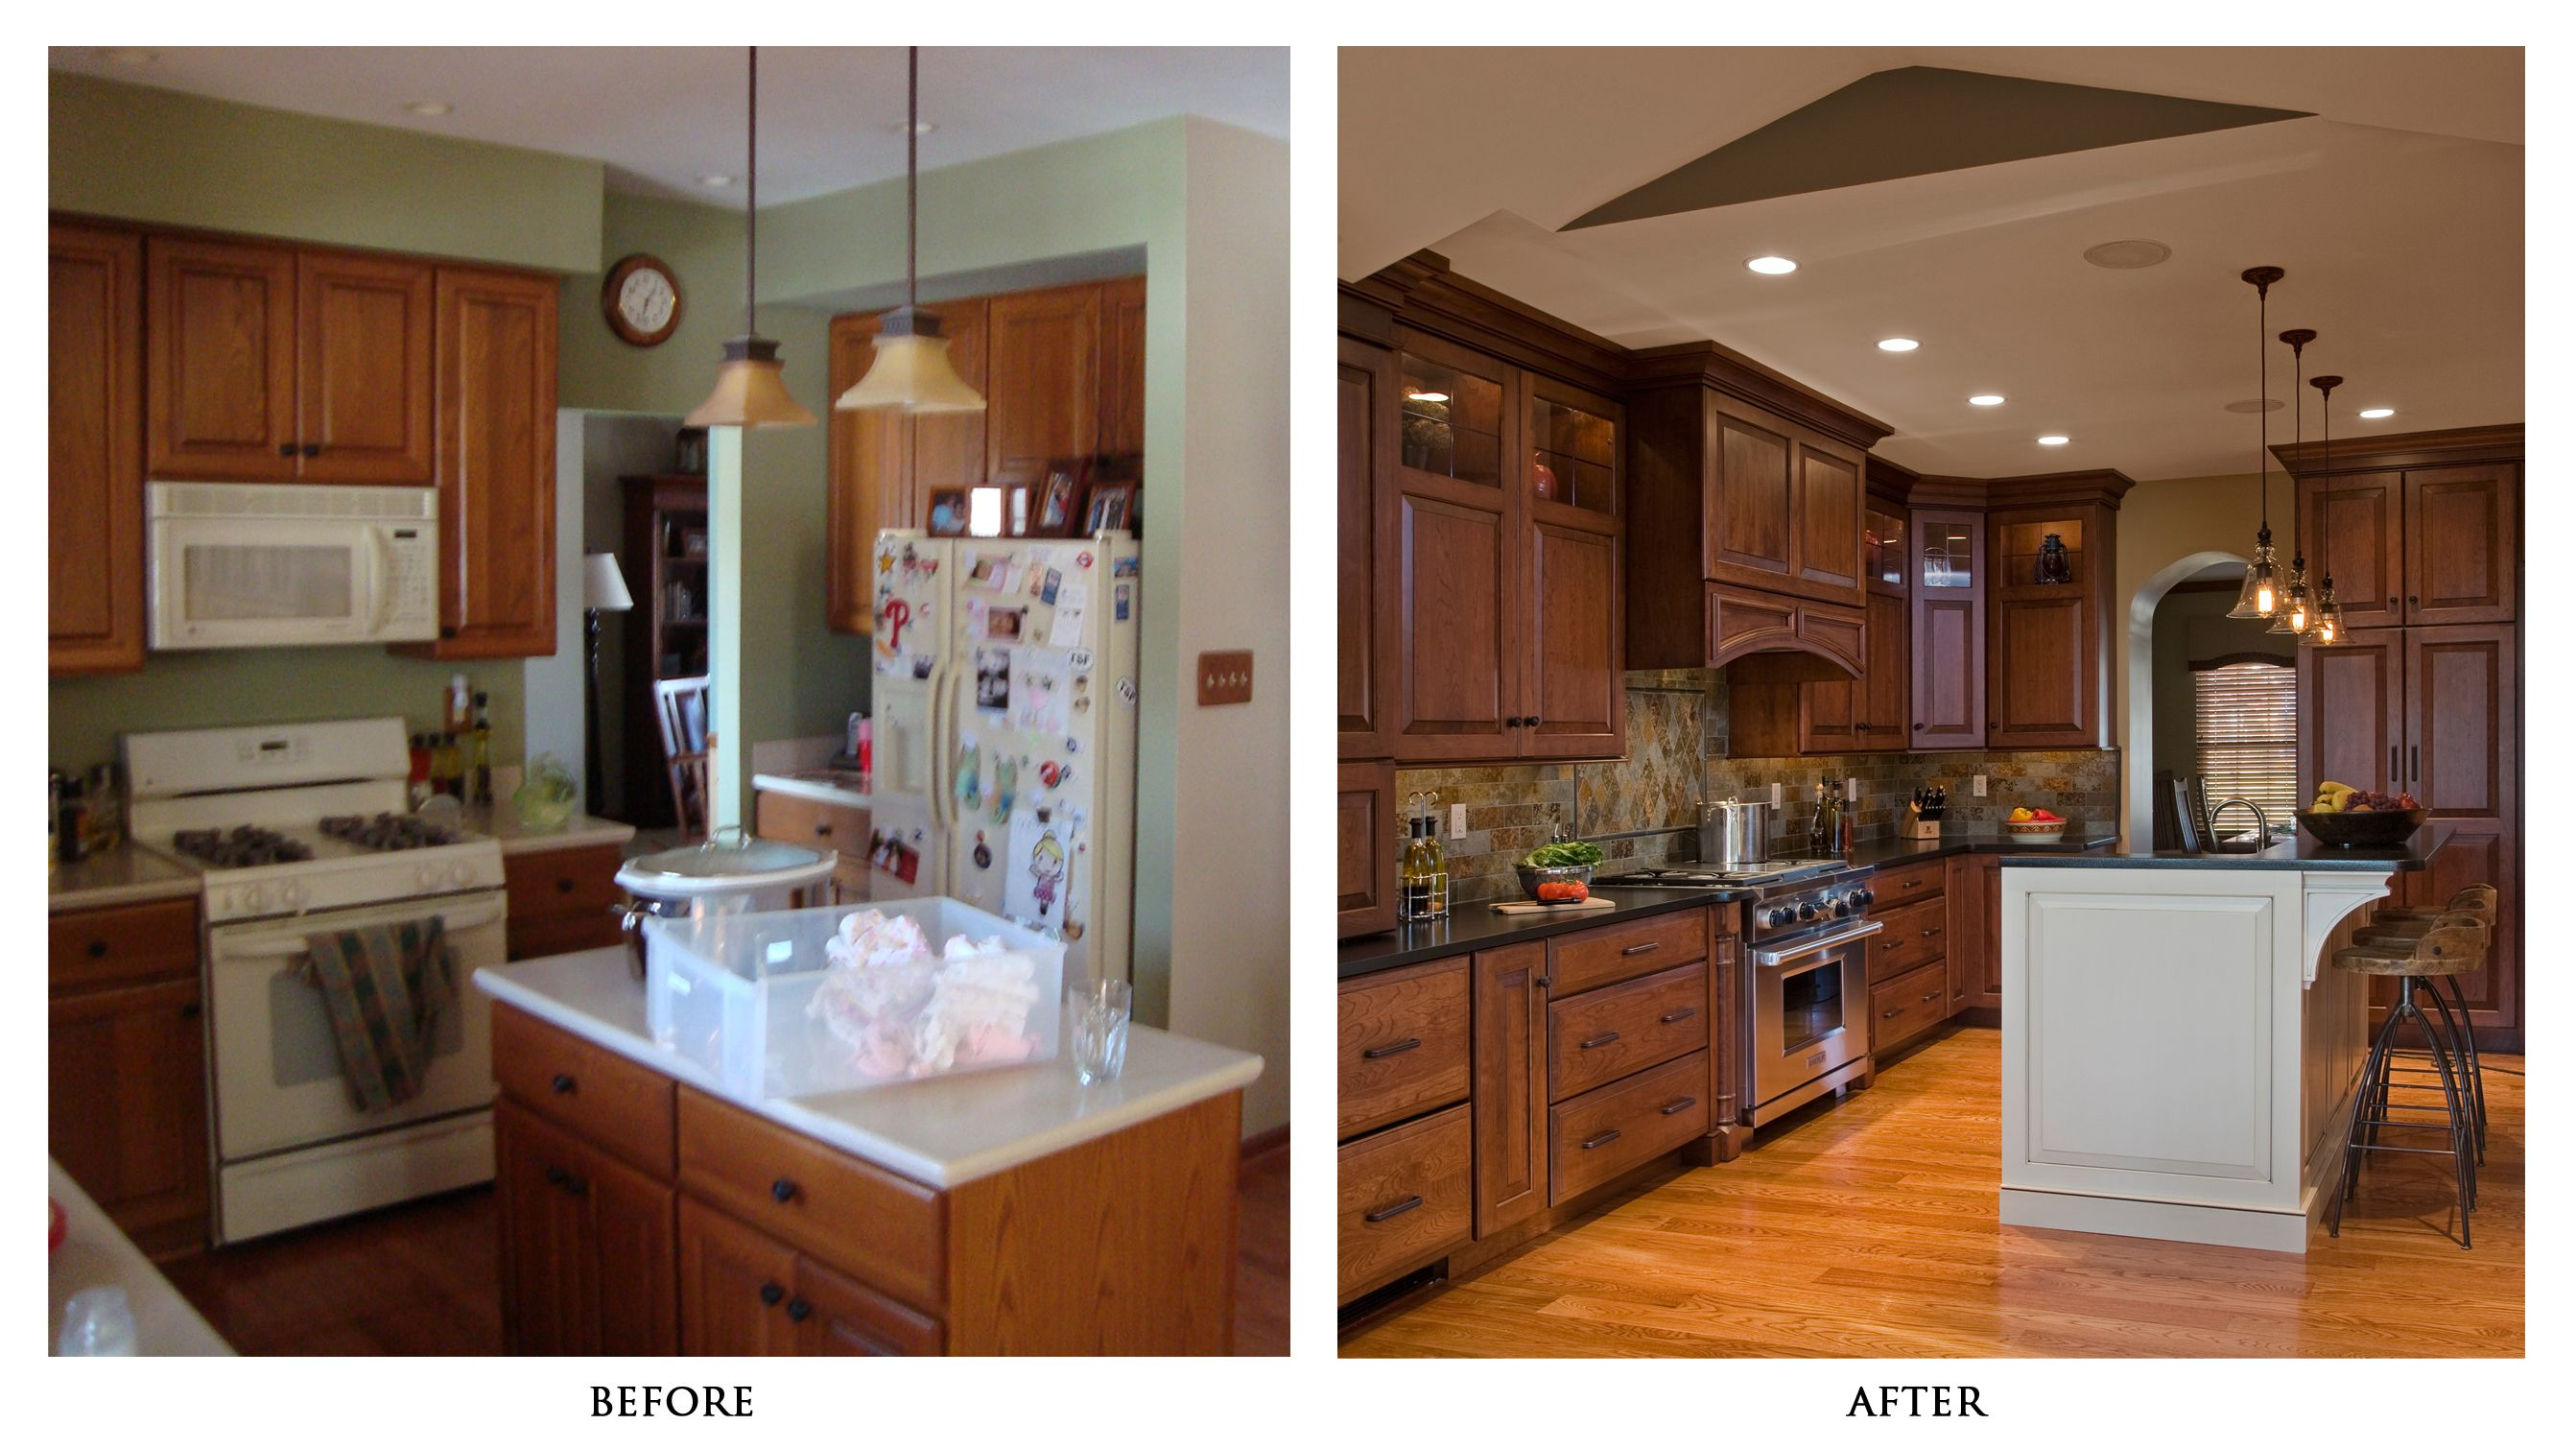 Remodel Kitchen Before And After Classy Kitchen Remodels Before And After Photos  Kitchen  Pinterest Design Ideas